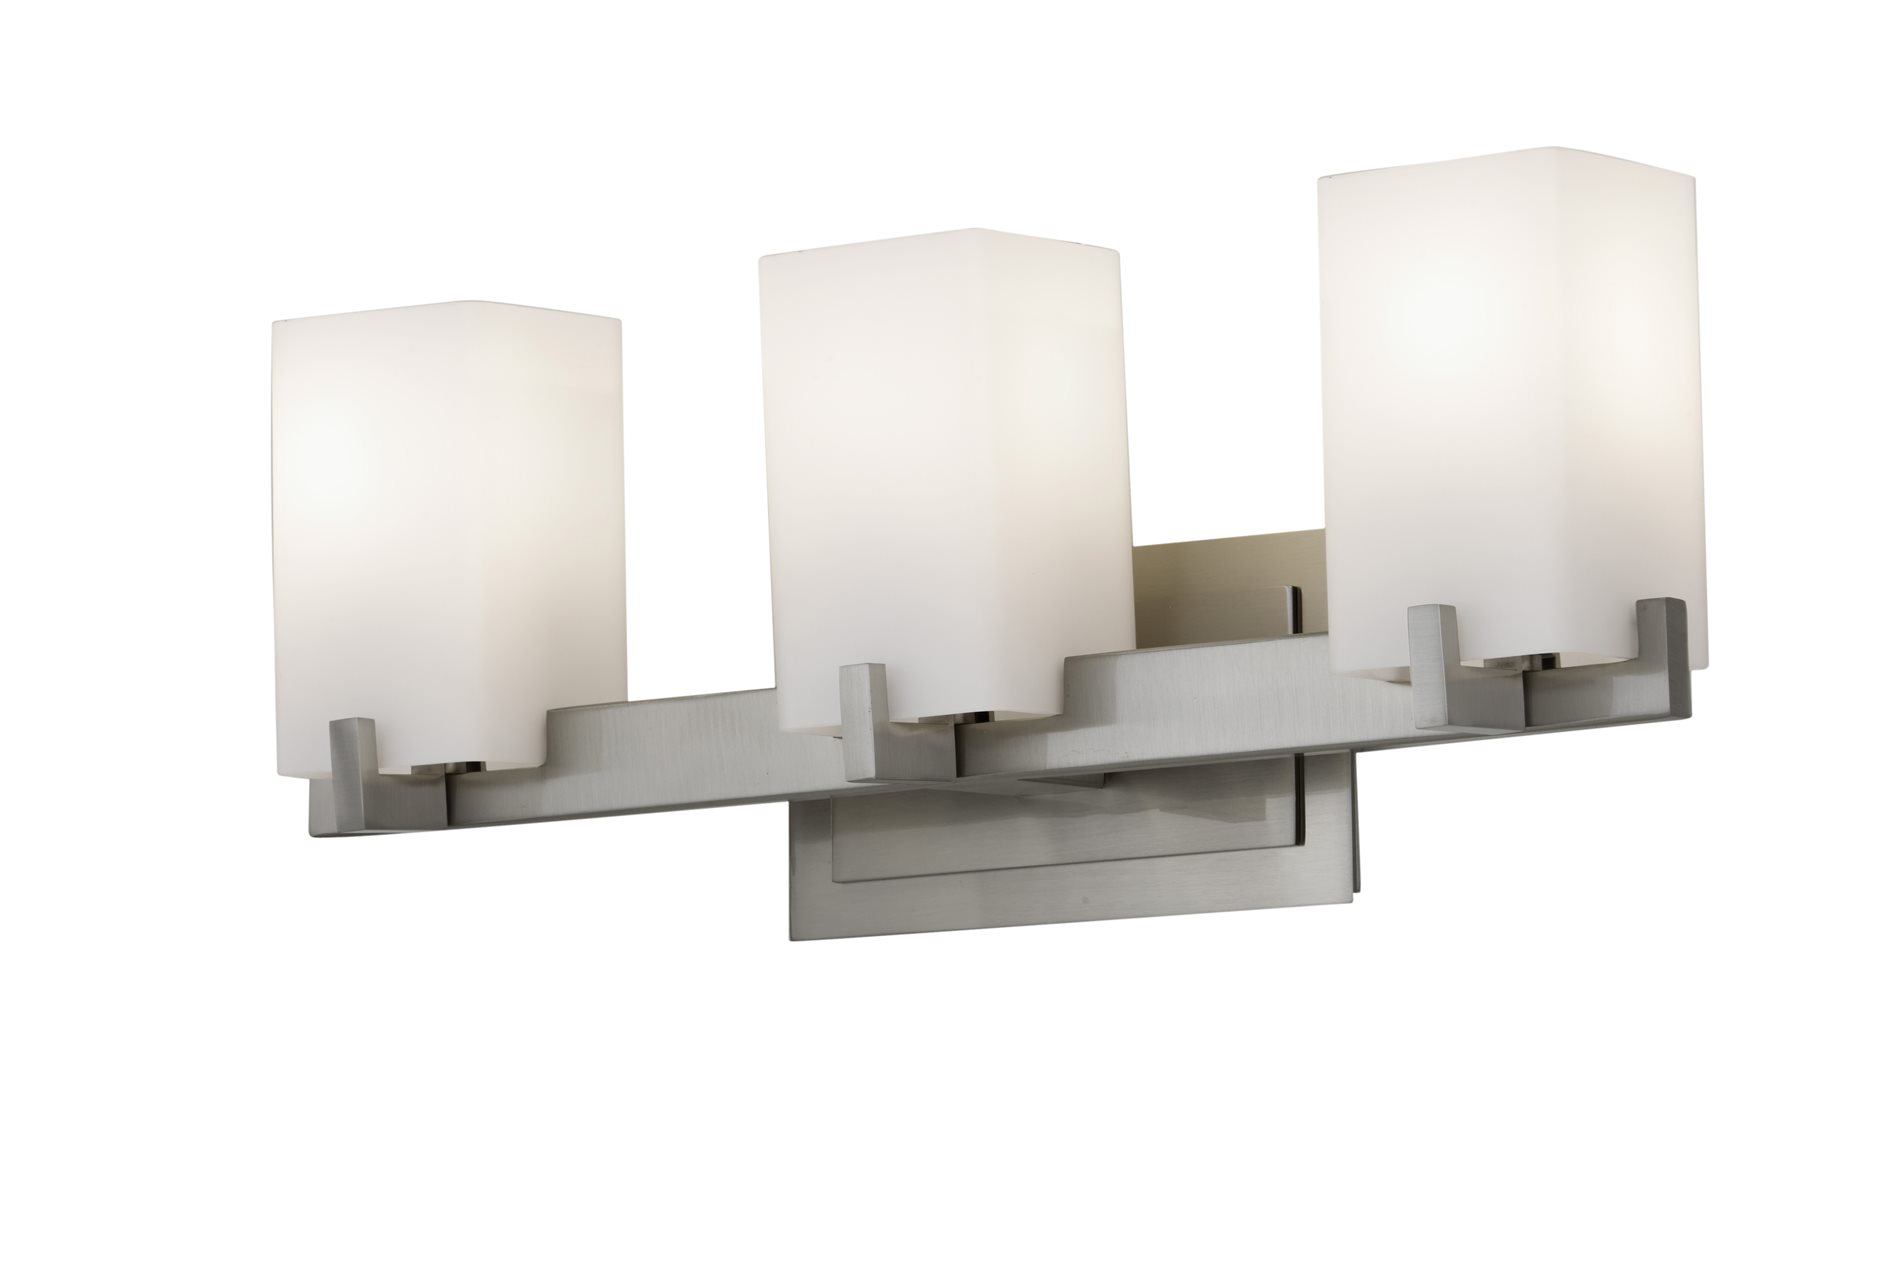 Murray Feiss Vs18403 Bs Riva Contemporary Bathroom Vanity Light Mrf Vs18403 Bs